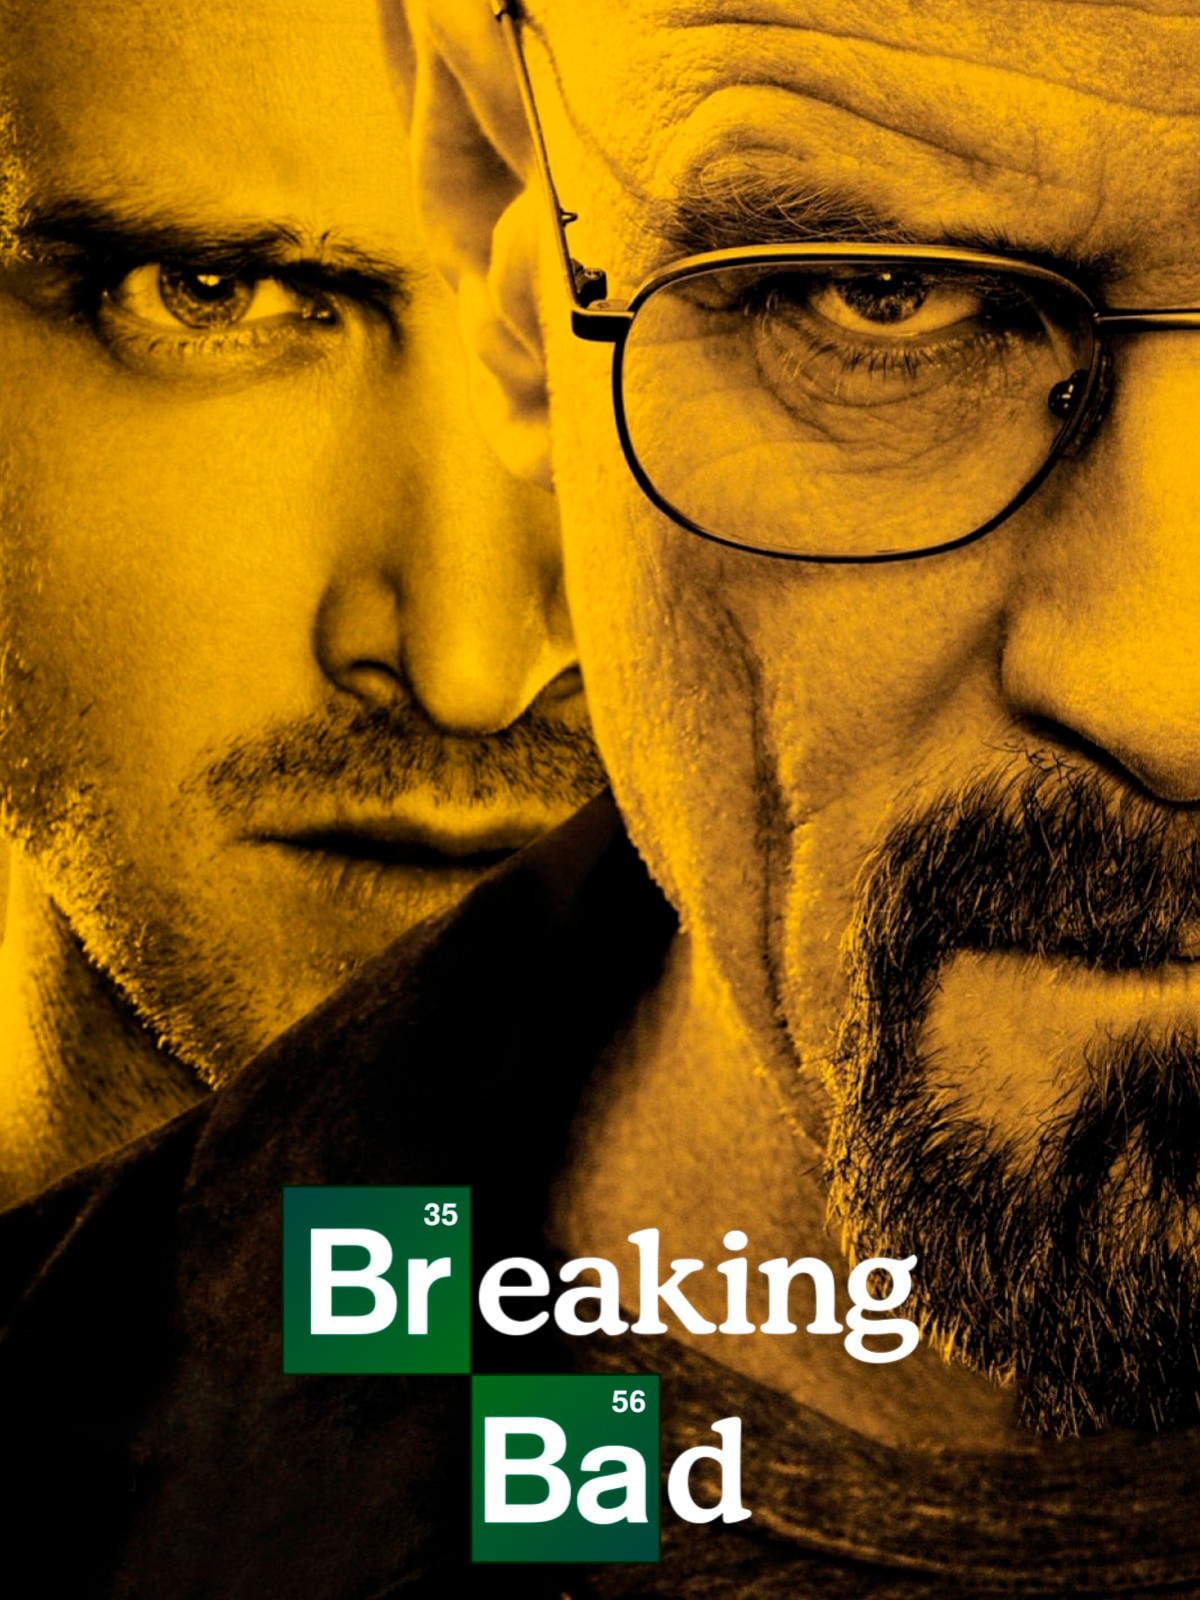 Cartel de serie de Netflix Breaking bad